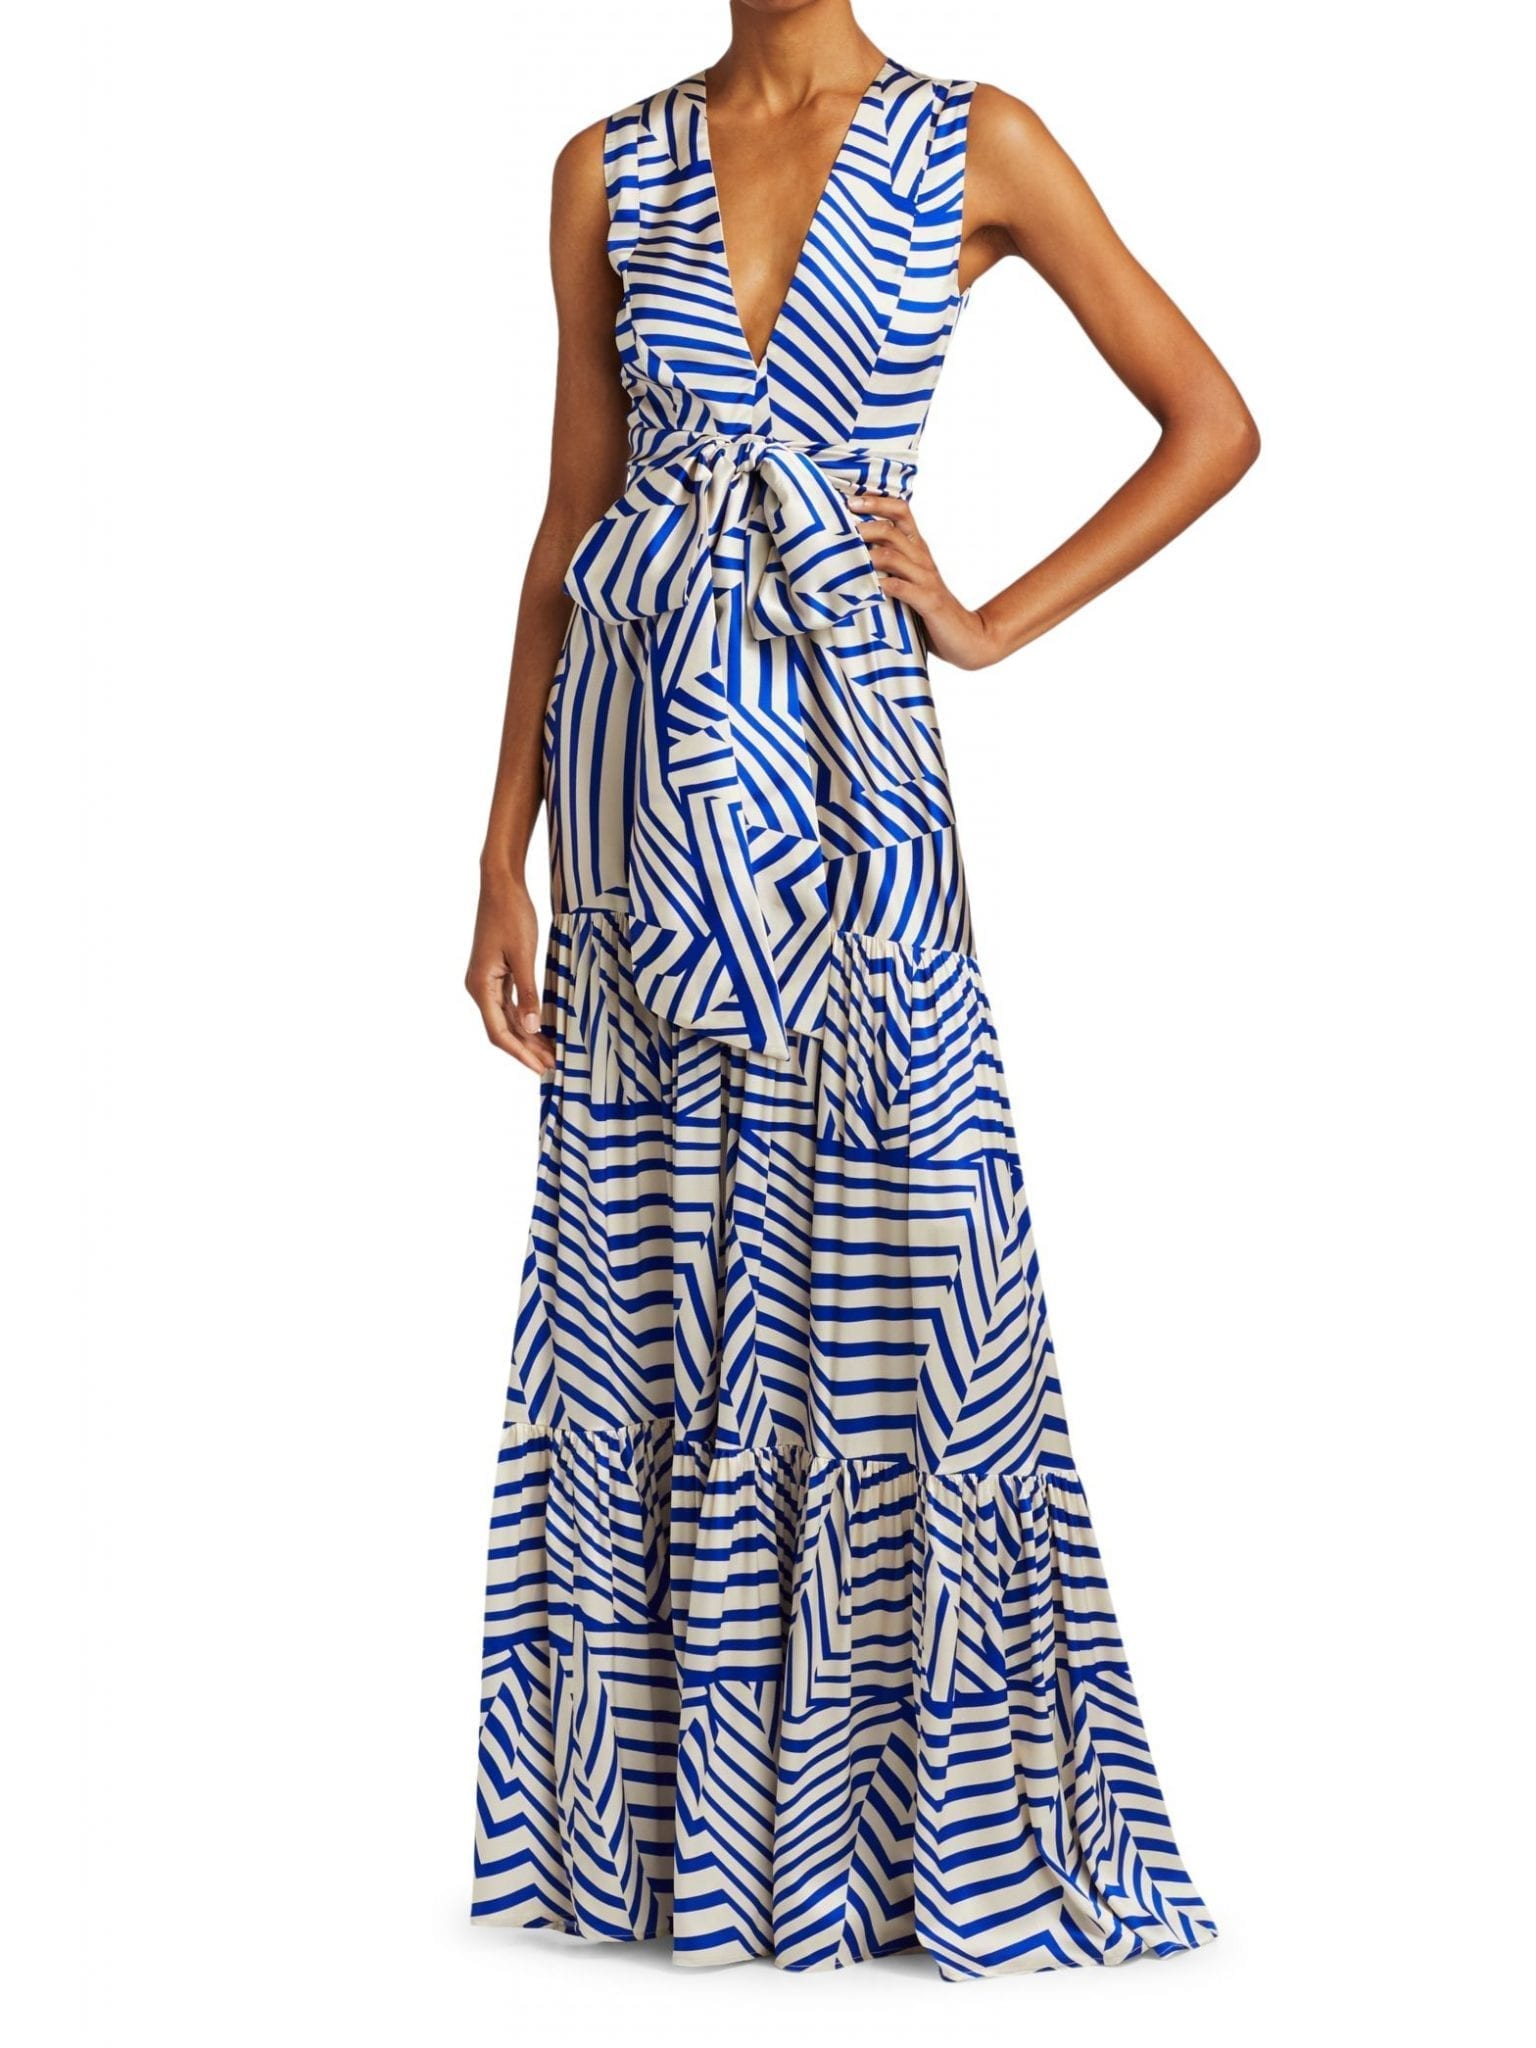 SILVIA TCHERASSI Polly Striped Maxi Dress